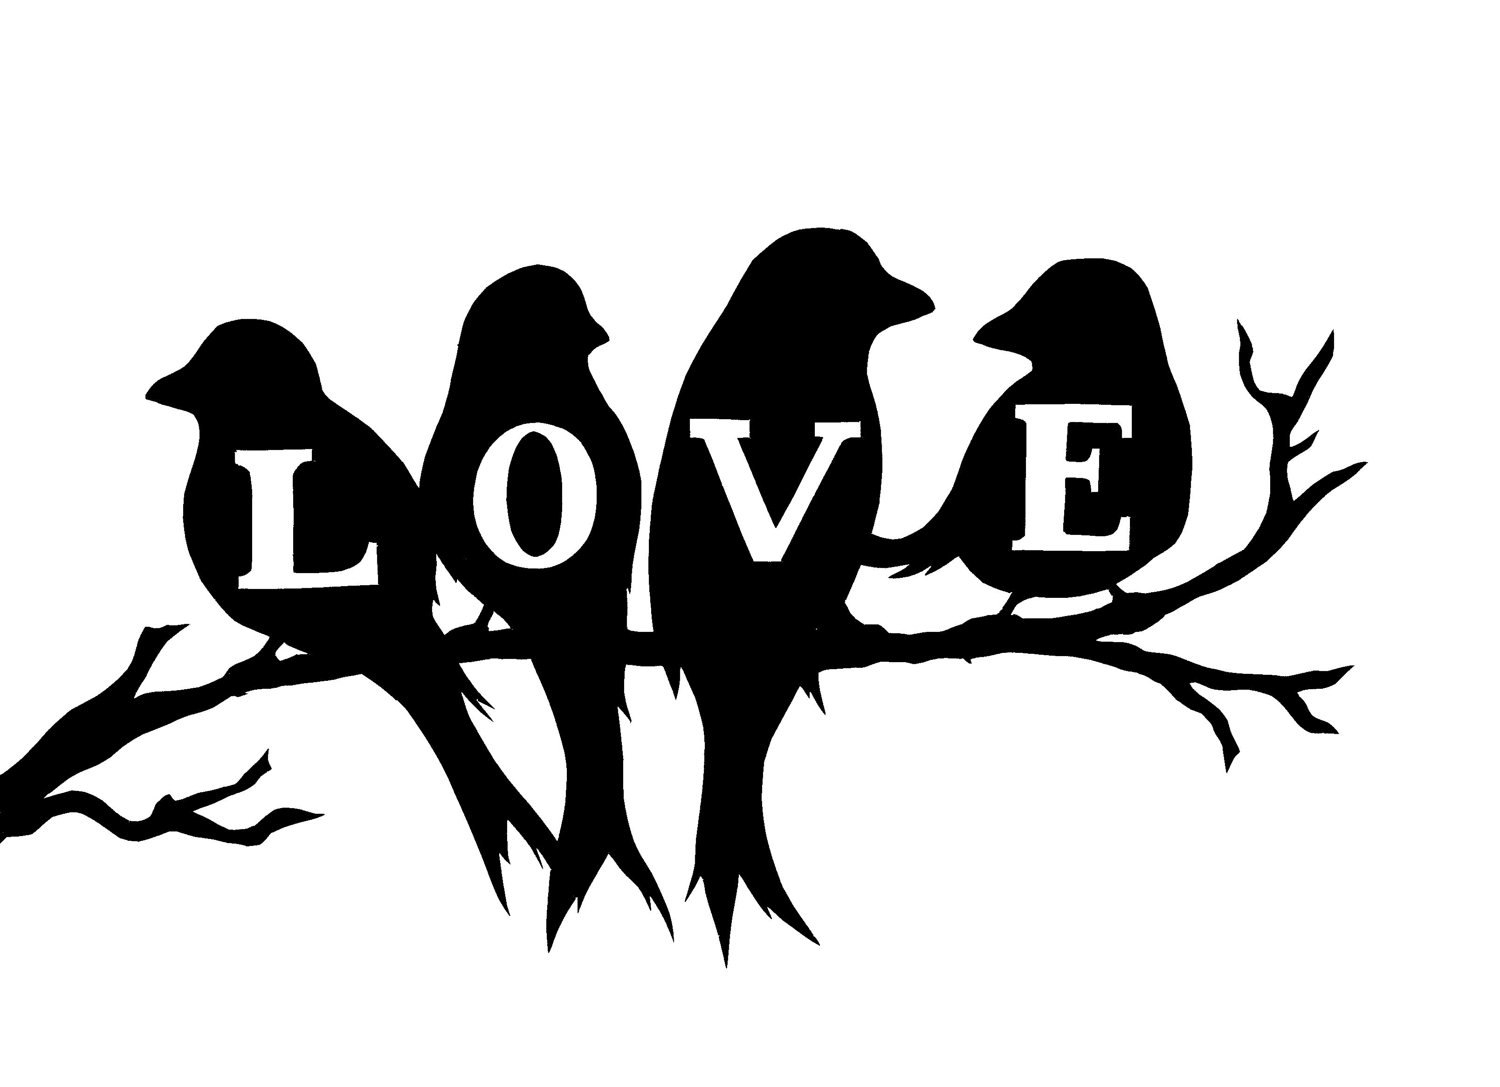 Fashionable Birds On A Branch Wall Decor In Love Birds Vinyl Wall Decal, Wall Decor, Birds On A Branch, Wall (View 20 of 20)